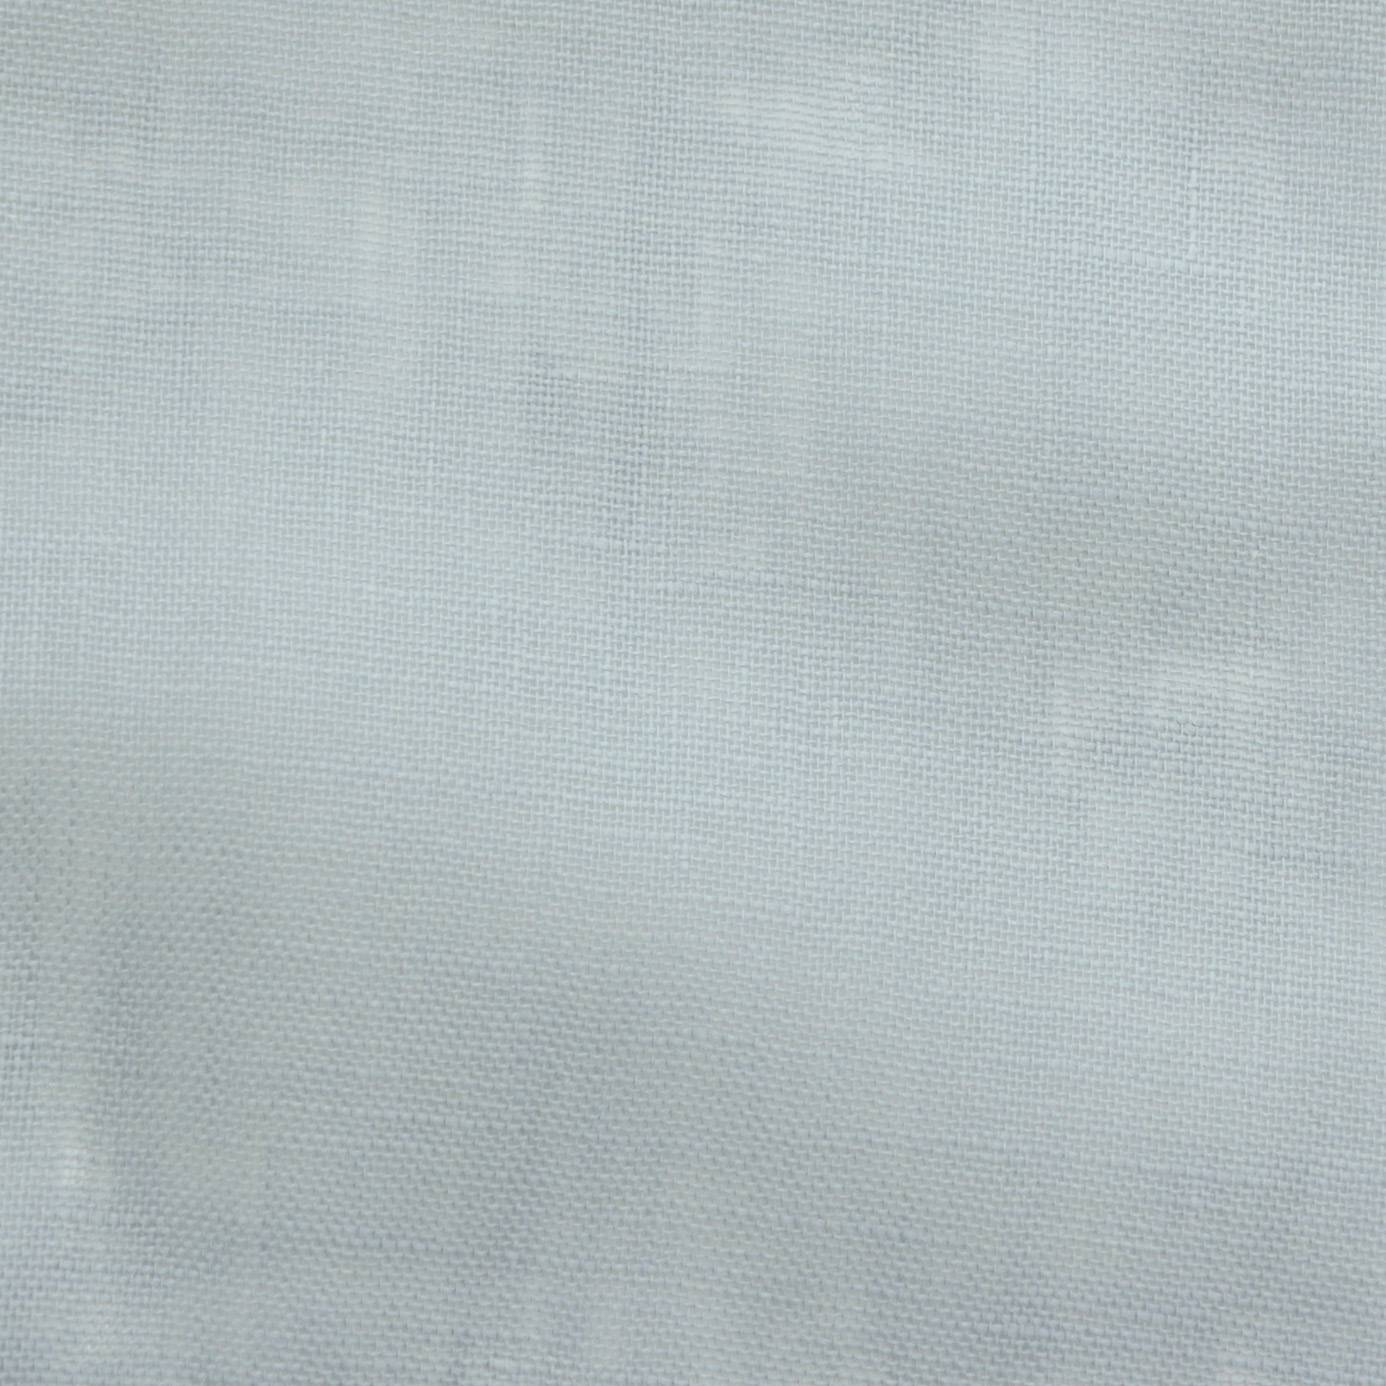 Lightweight Sheers Fabric Cloud 243348 Sanderson Lightweight Sheers Fabric Collection